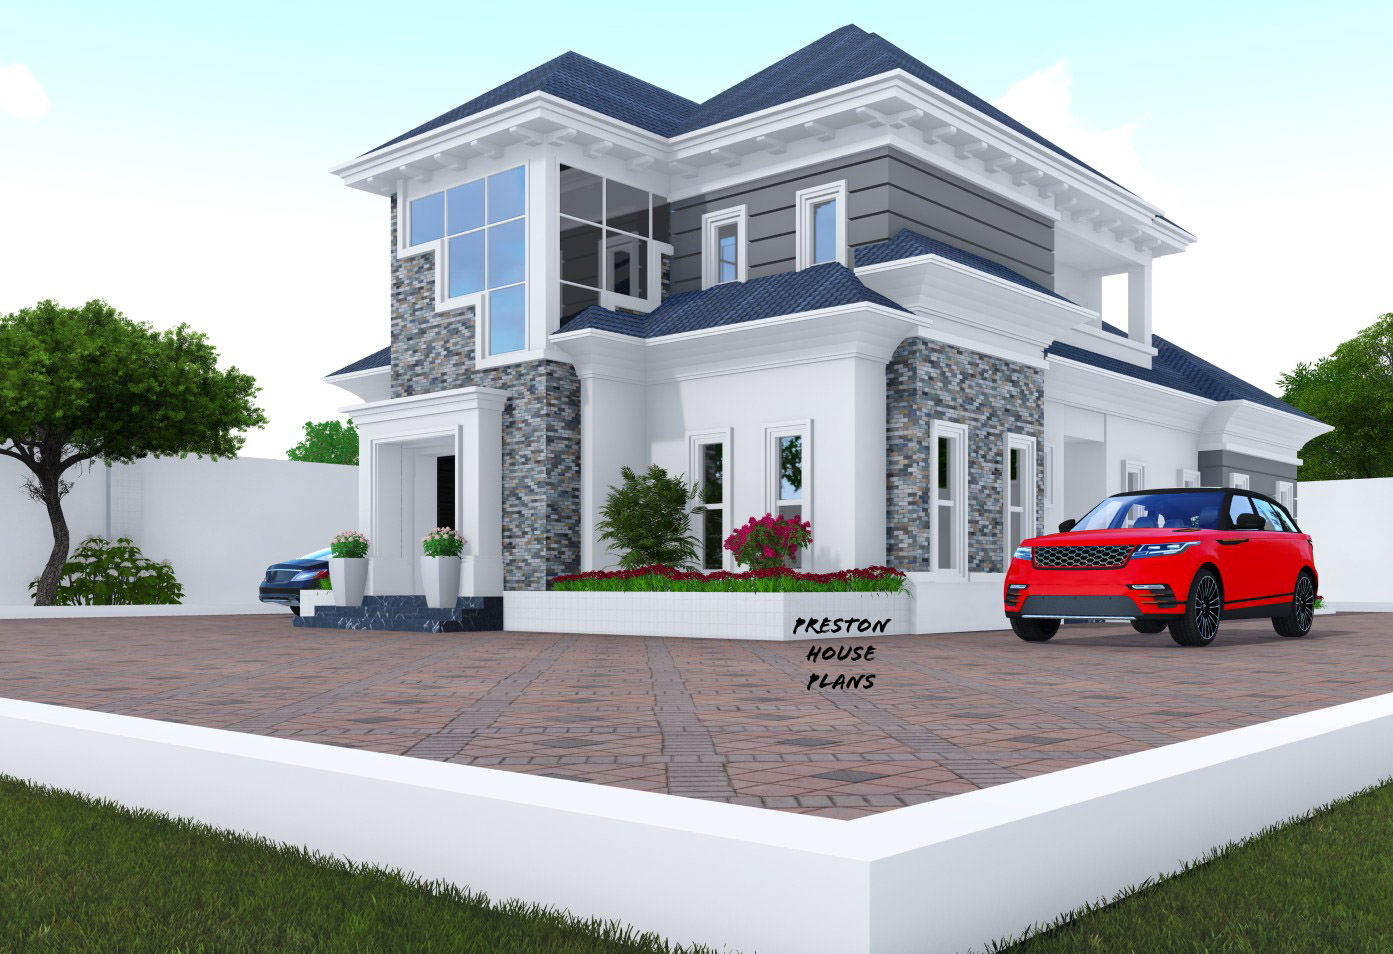 4 Bedroom Bungalow with a penthouse